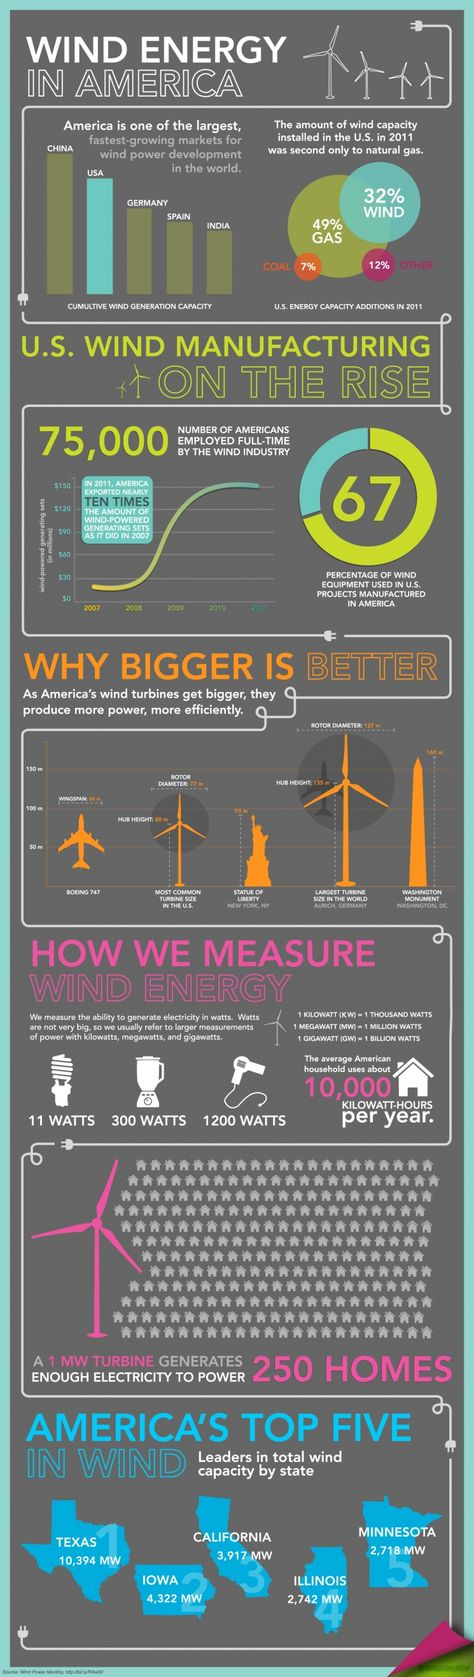 INFOGRAPHIC: Wind Energy in America